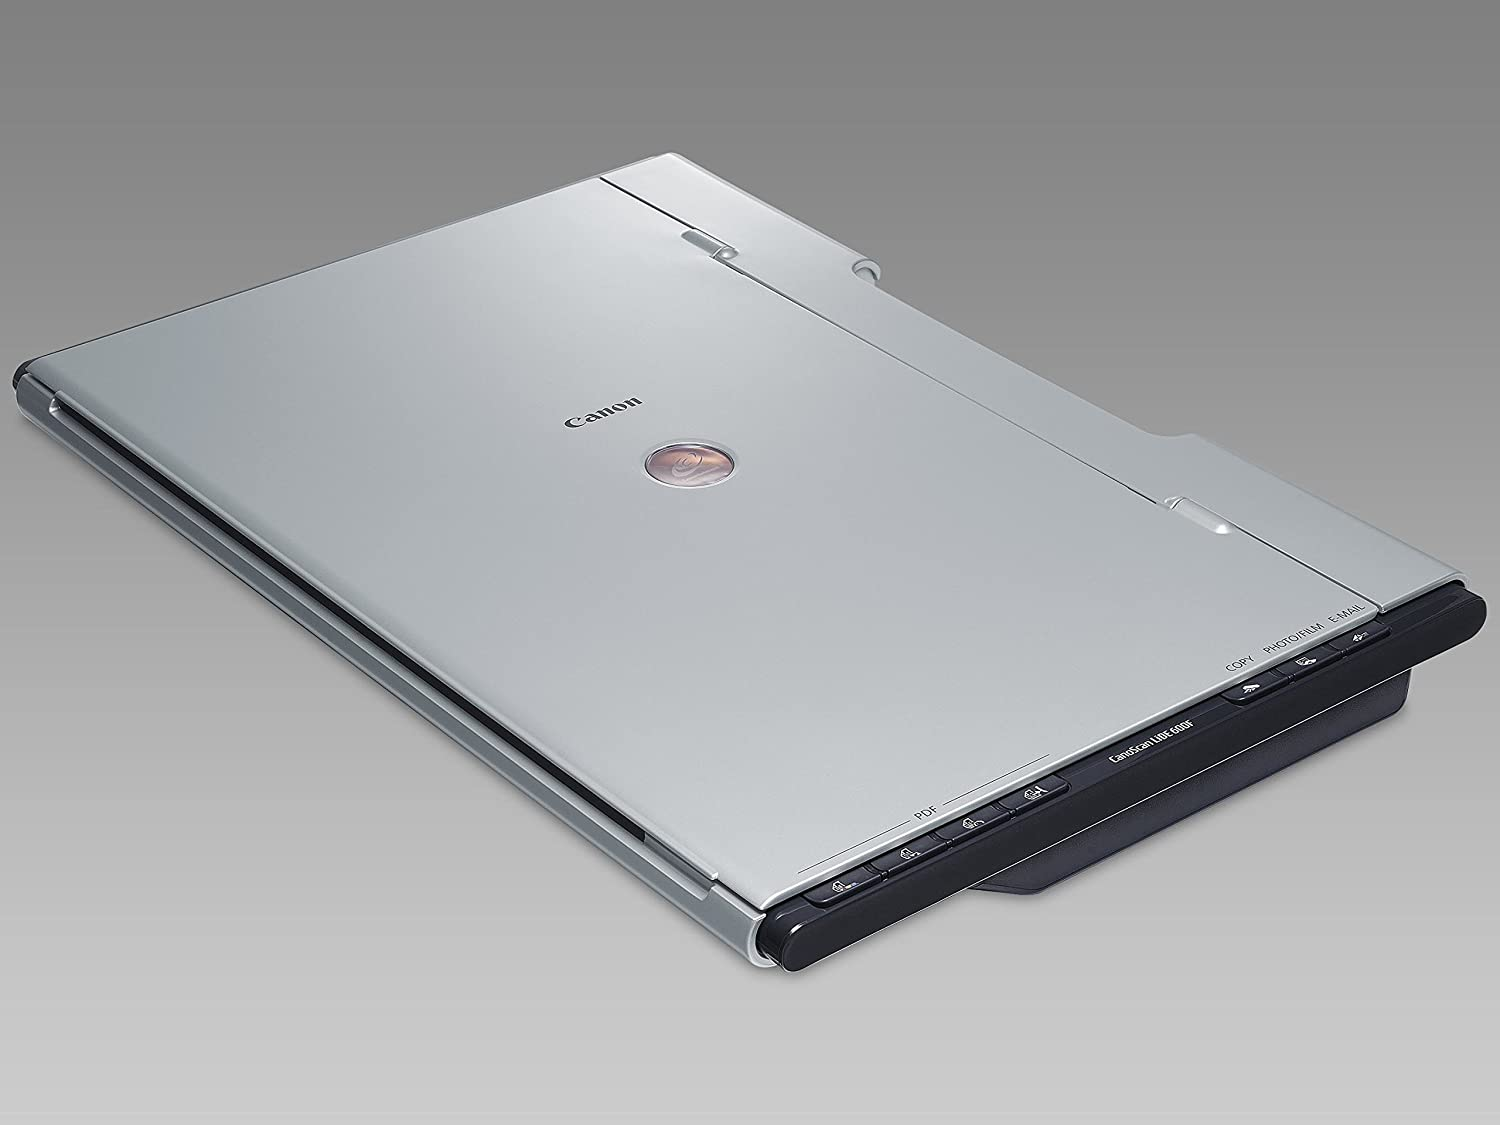 CANON CANOSCAN LIDE 600F SCANNER WINDOWS 7 DRIVER DOWNLOAD